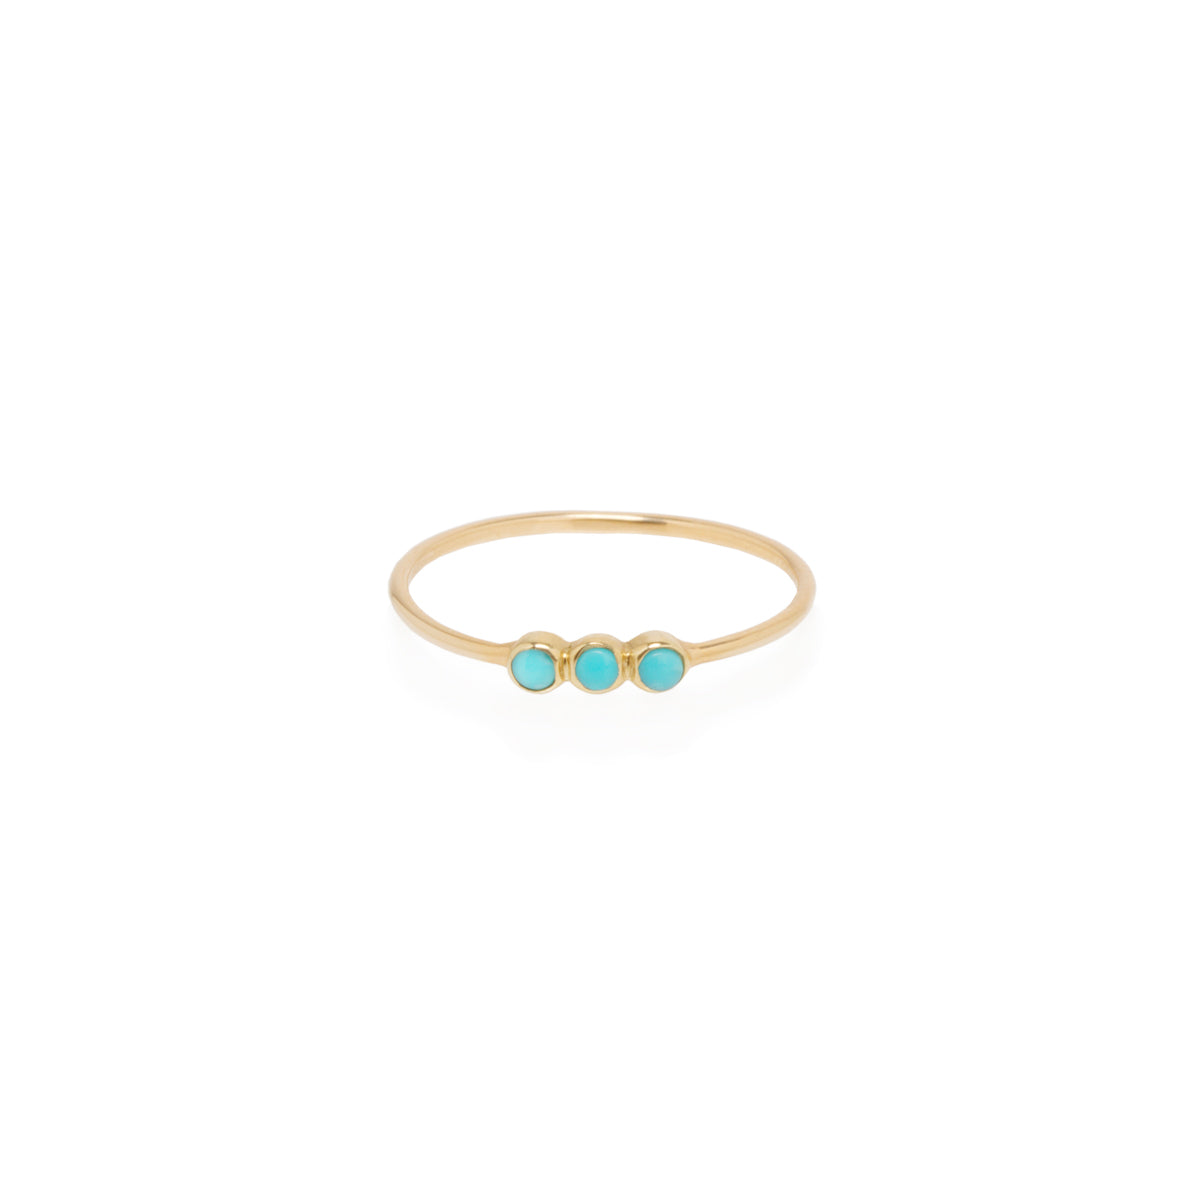 Zoë Chicco 14kt Yellow Gold 3 Turquoise Bezel Set Thin Band Ring